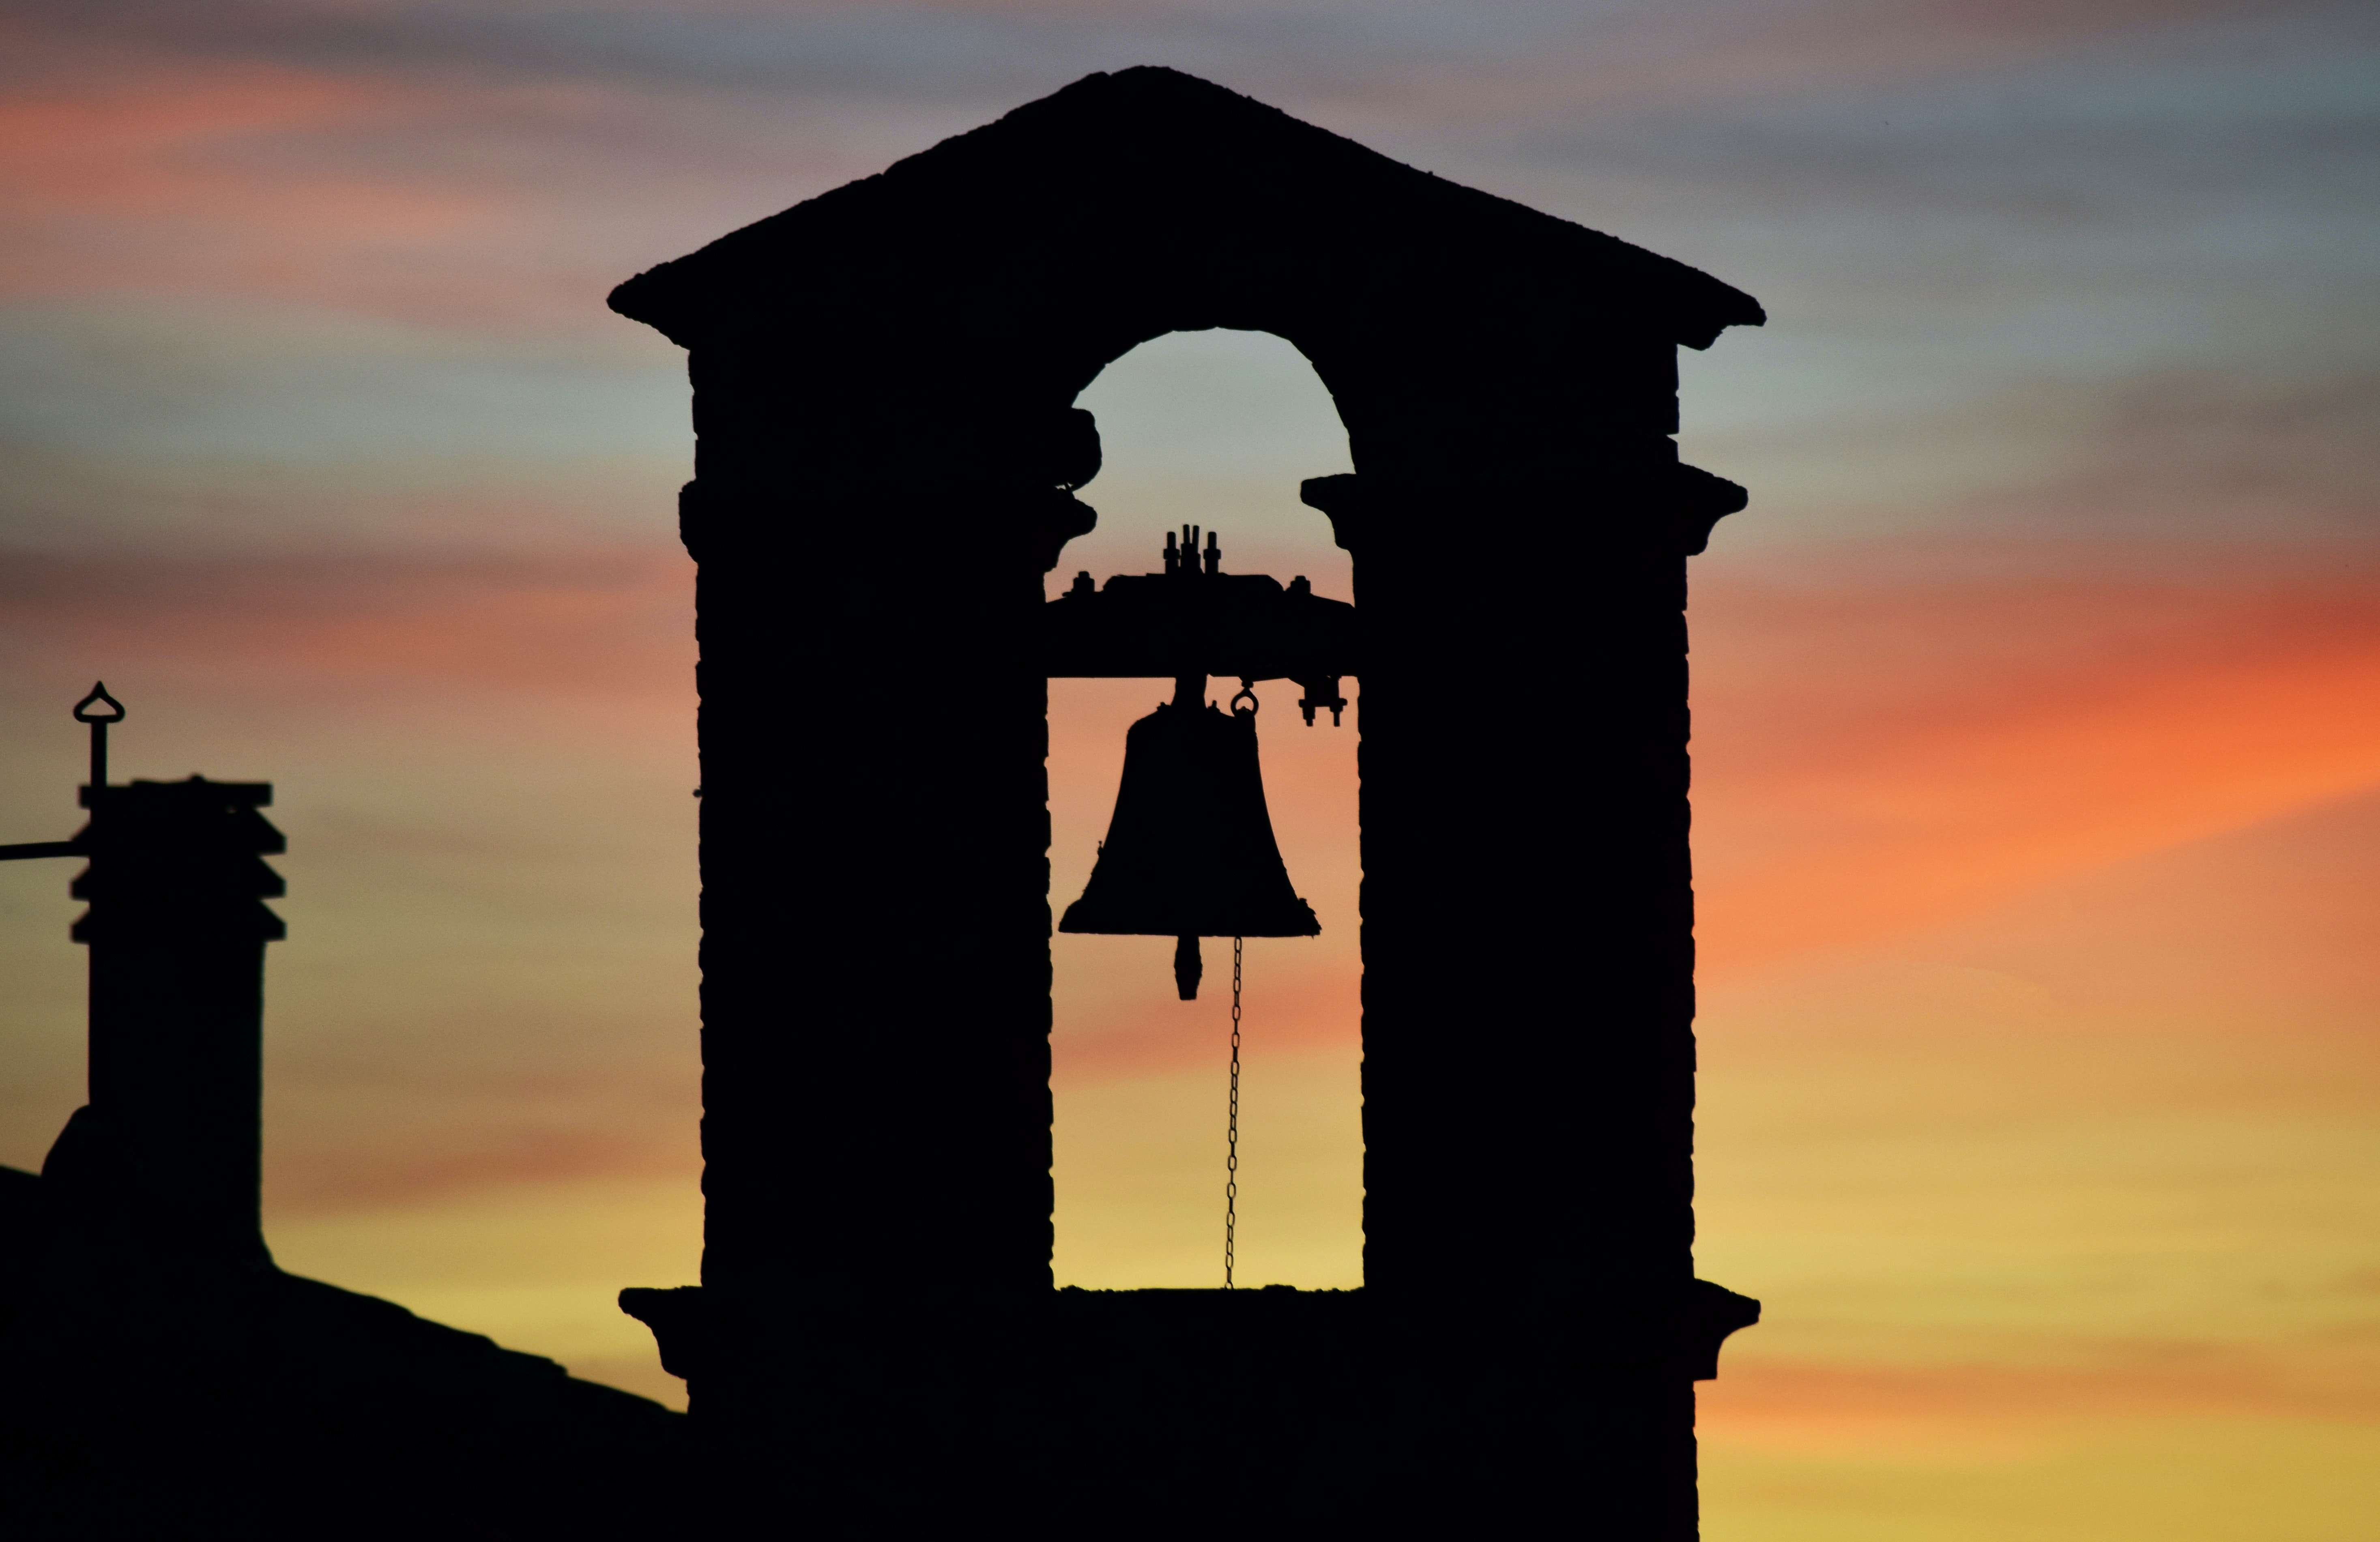 silhouette of church bell during sunset